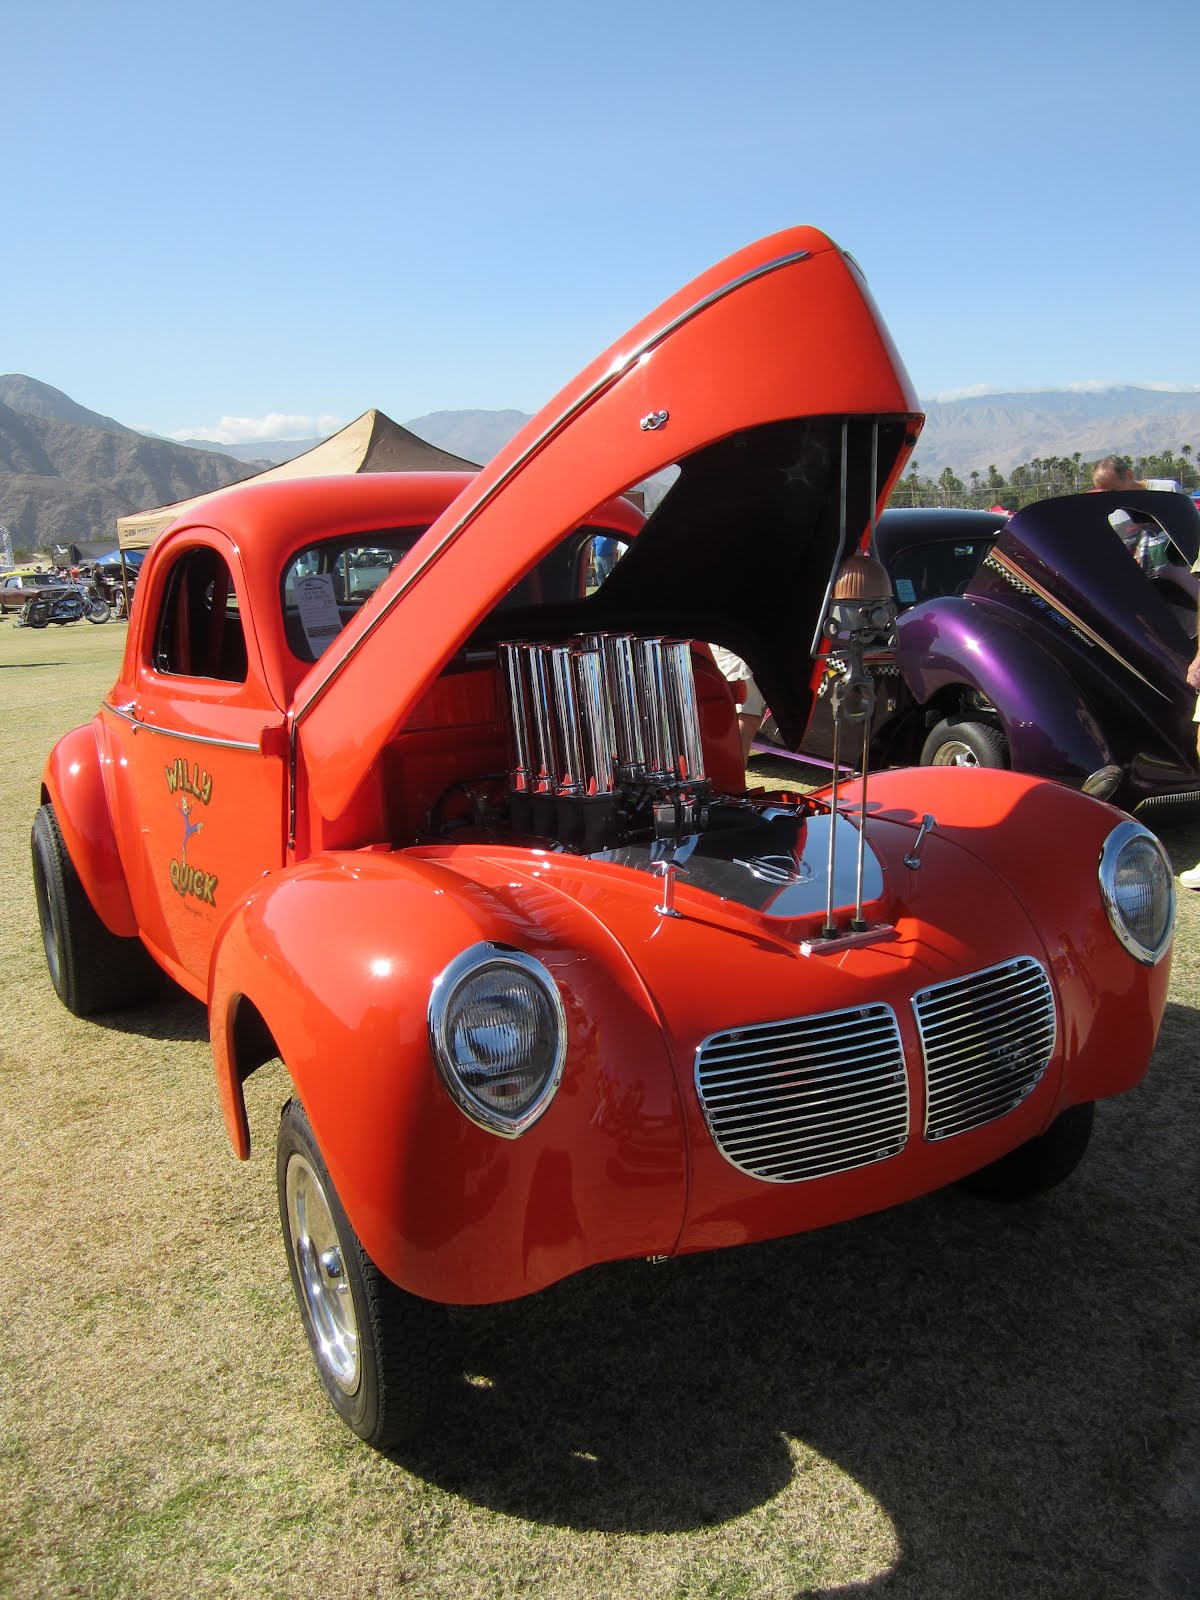 Covering Classic Cars Palm Desert Car Show Highlights - Palm springs classic car show